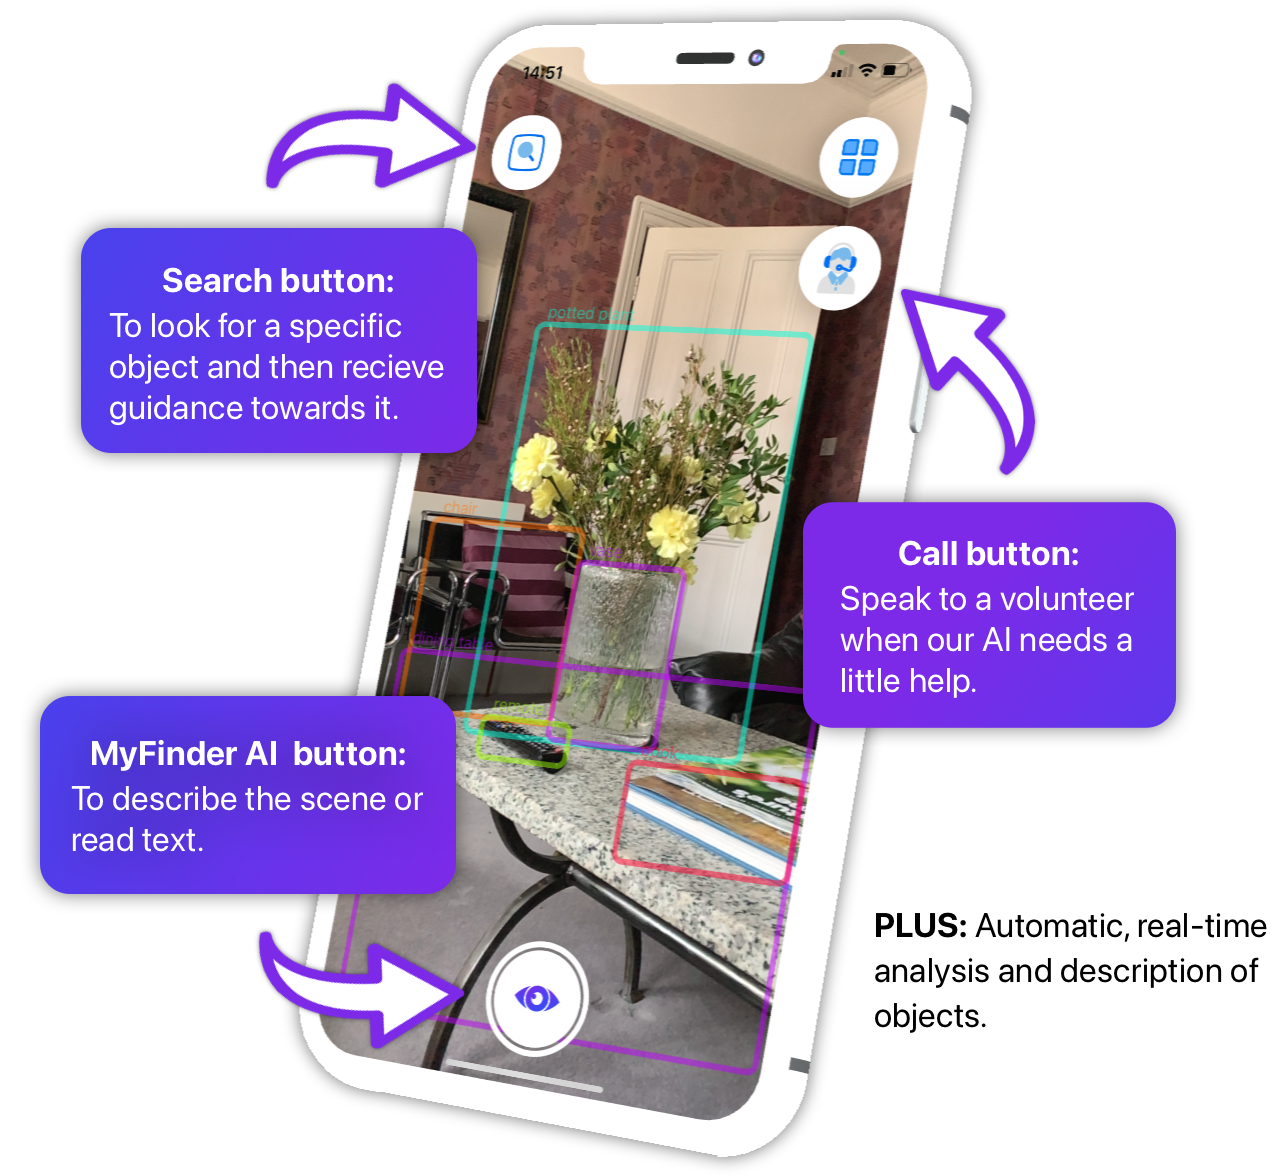 Features on the MyFinder app include. Search button: to look for a specific object and then receive guidance towards it. MyFinder AI Button: To describe the scene or read text. Automatic, real-time analysis and description of objects. Call Button: Speak to a volunteer when our AI needs a little help.